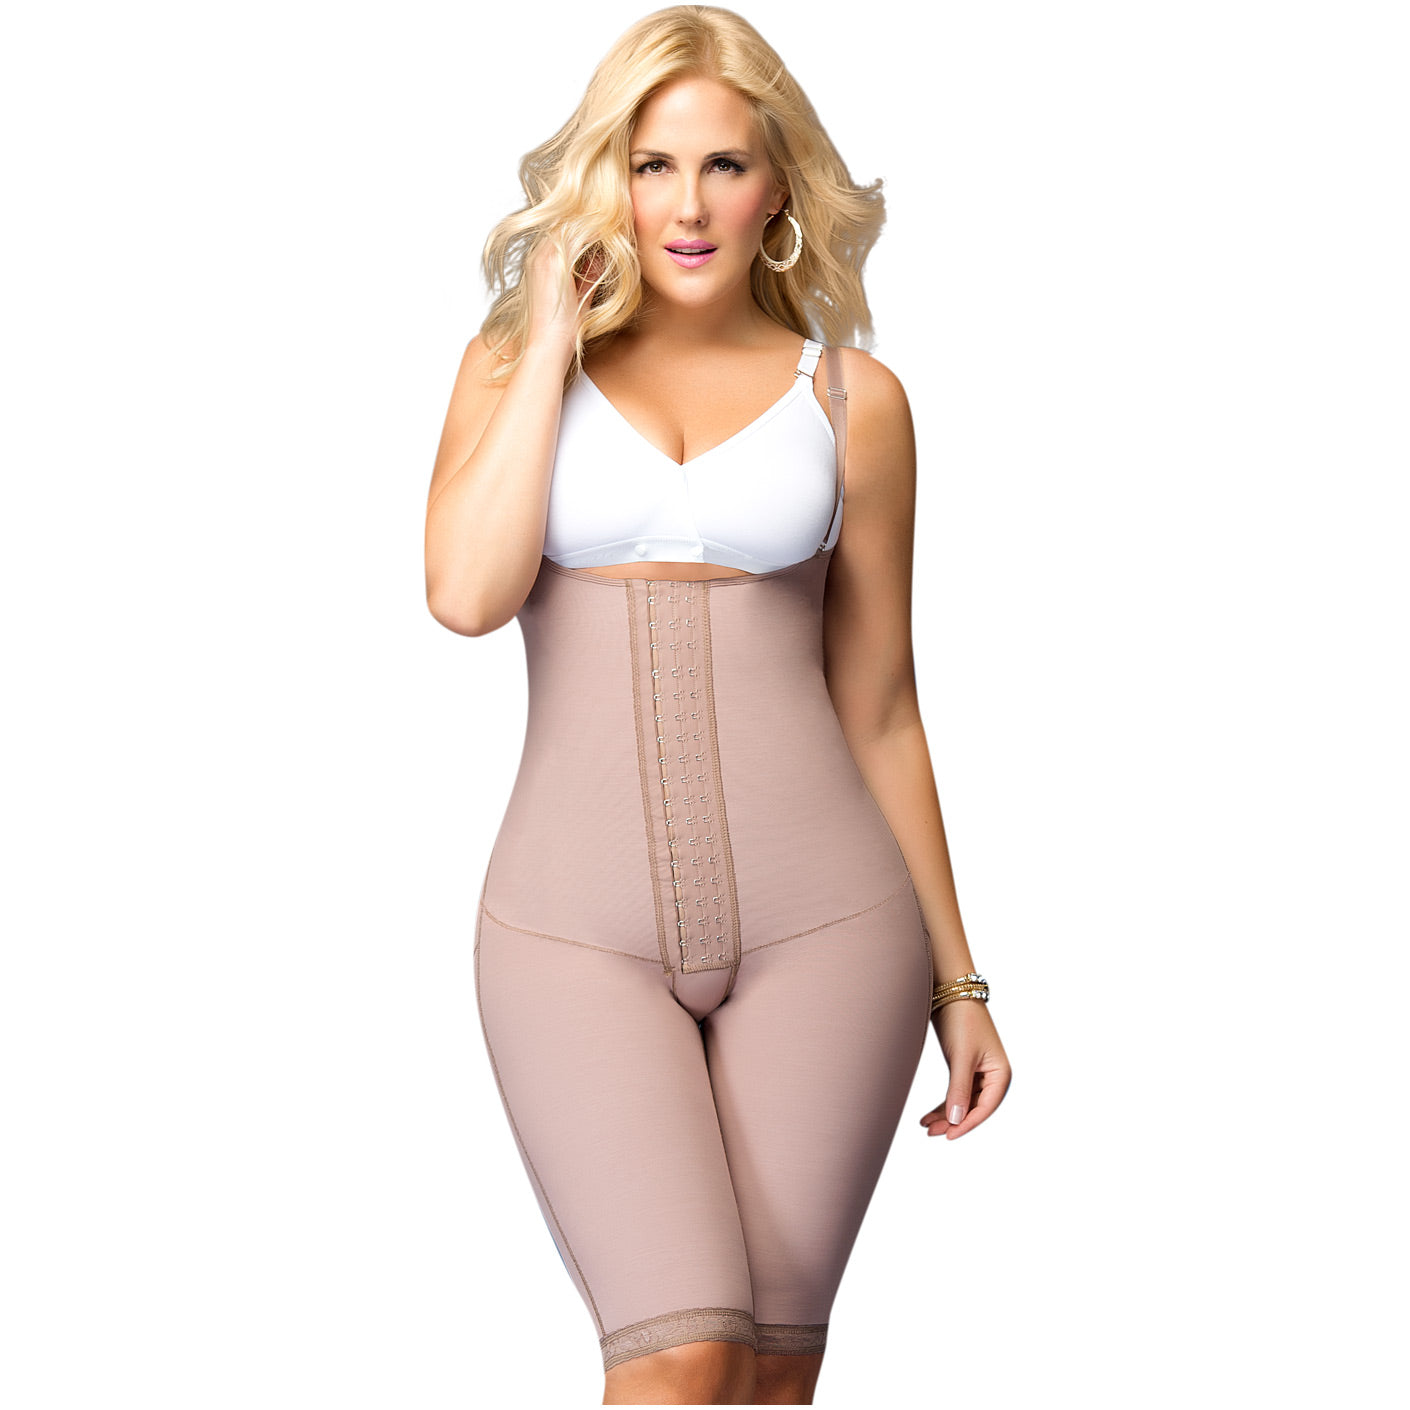 D'Prada Shapewear: 105 - Removable Straps Long Faja - Showmee Store